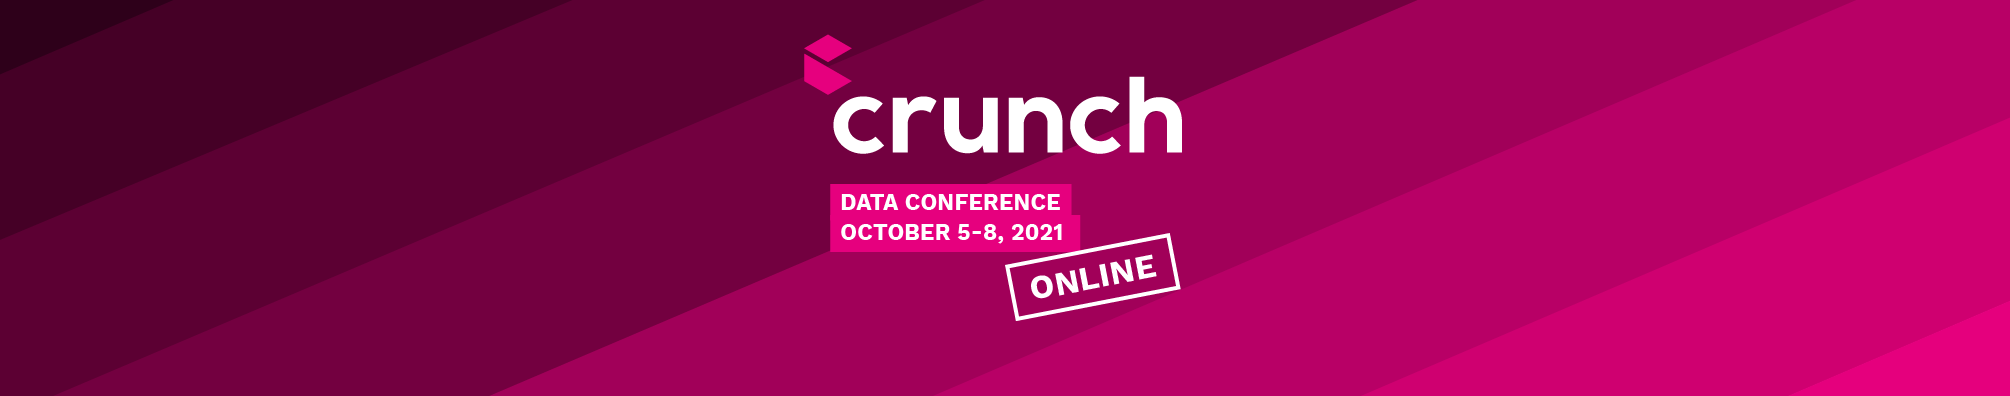 Crunch Conference 2021